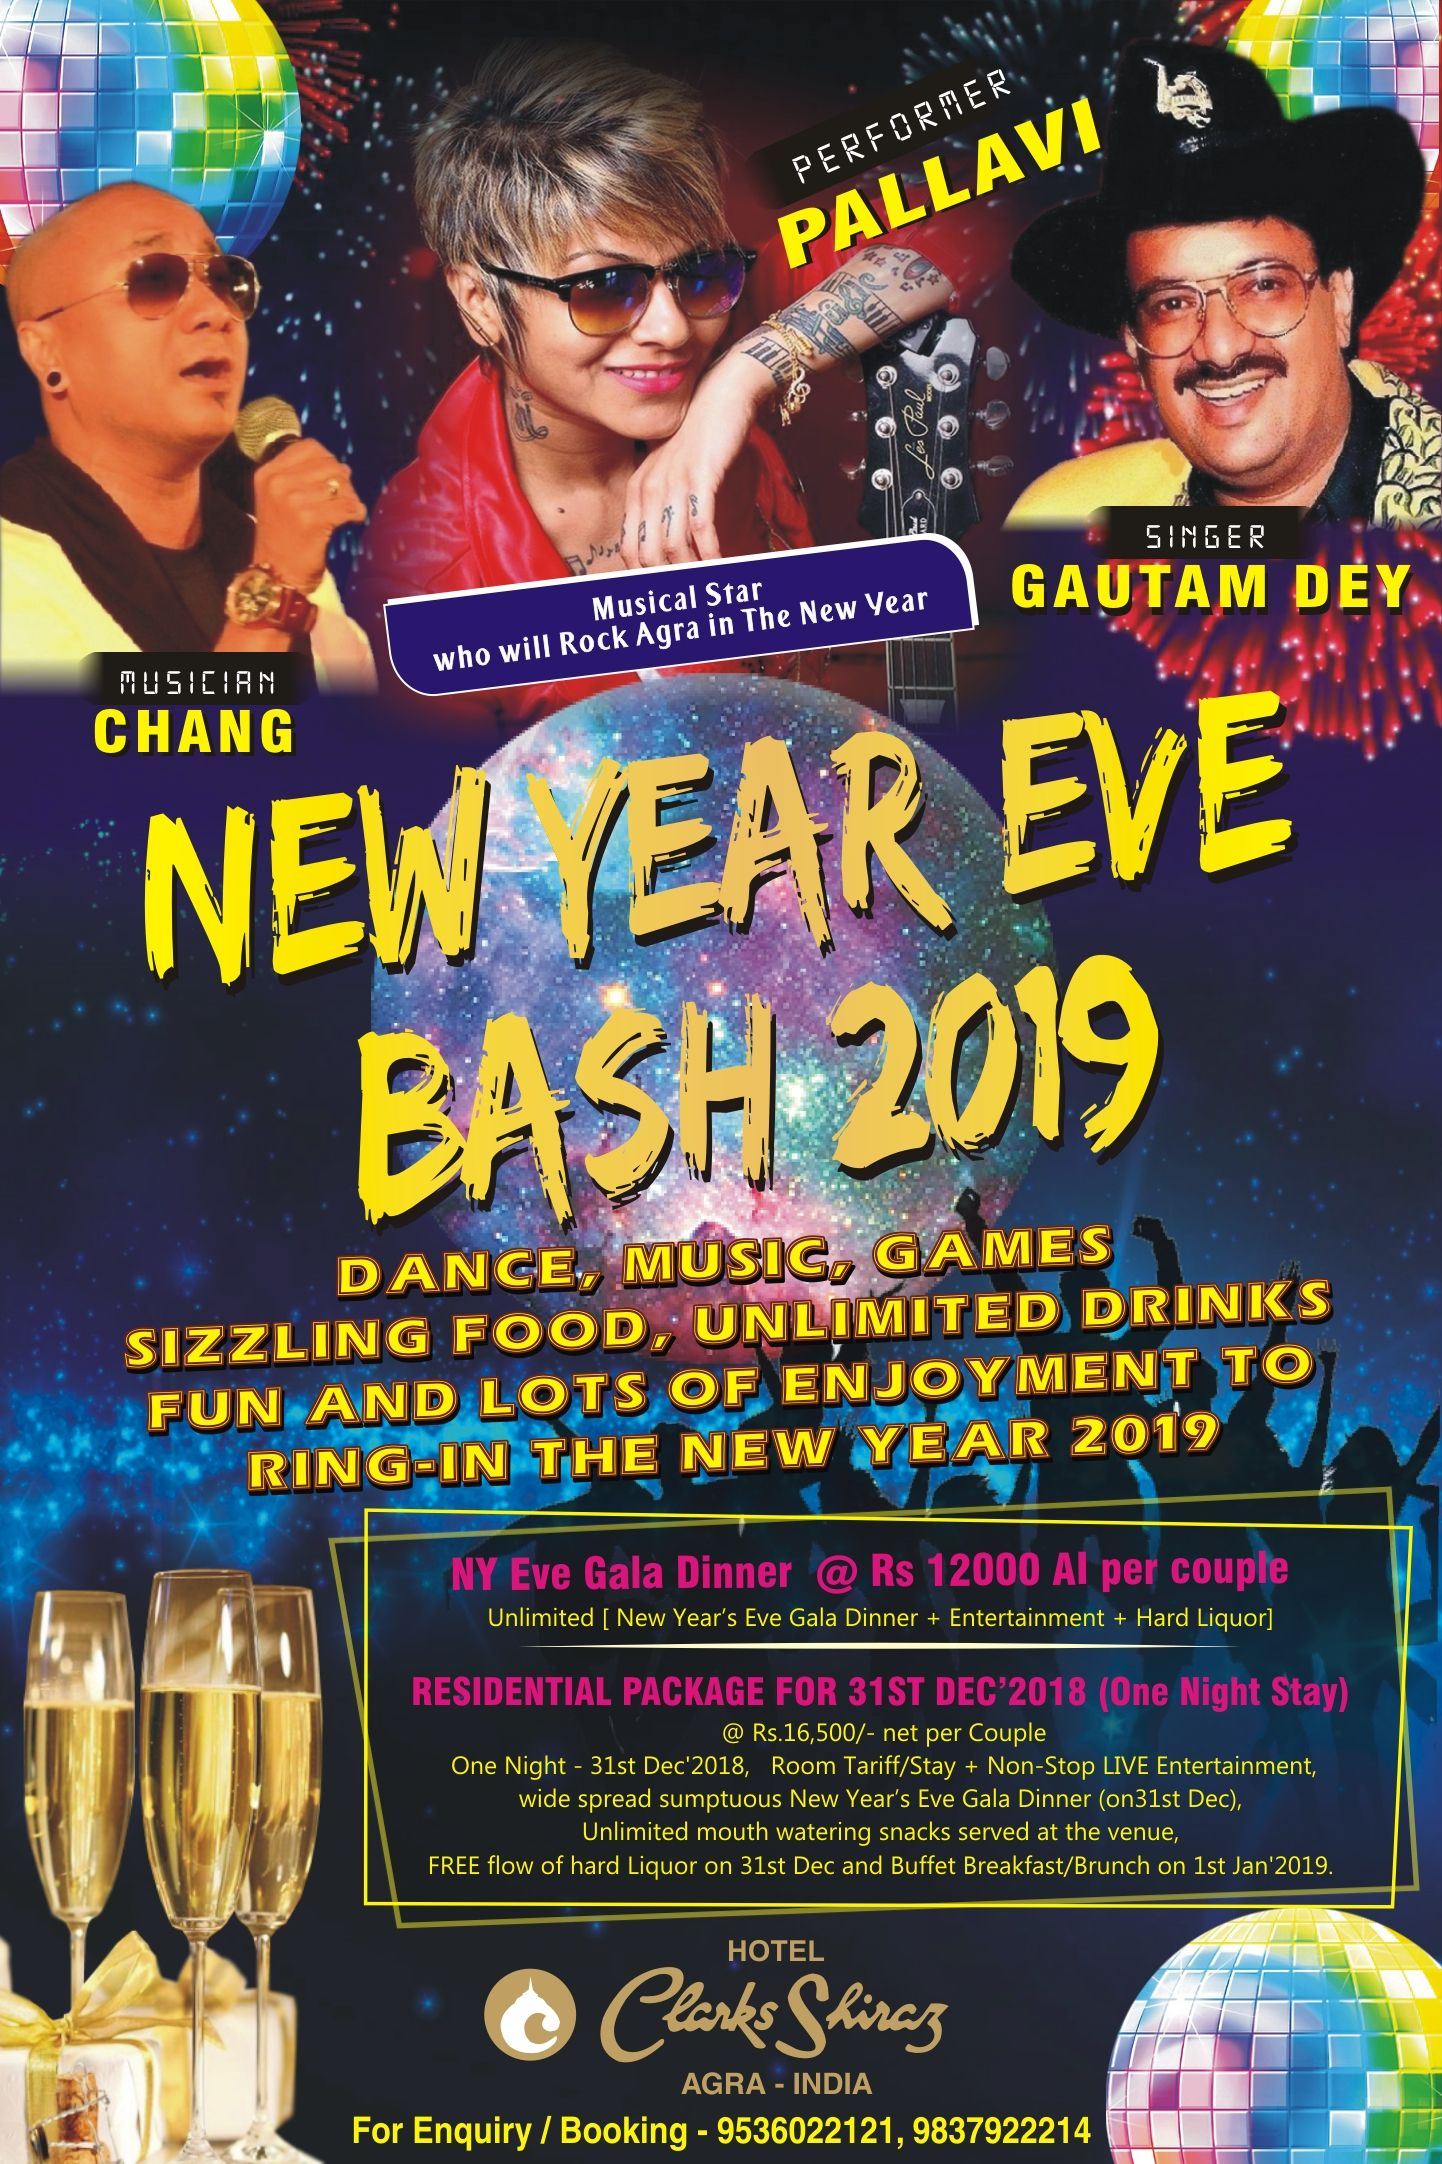 NEW YEAR EVE BASH 2019 DANCE, MUSIC, GAMES, SIZZLING FOOD